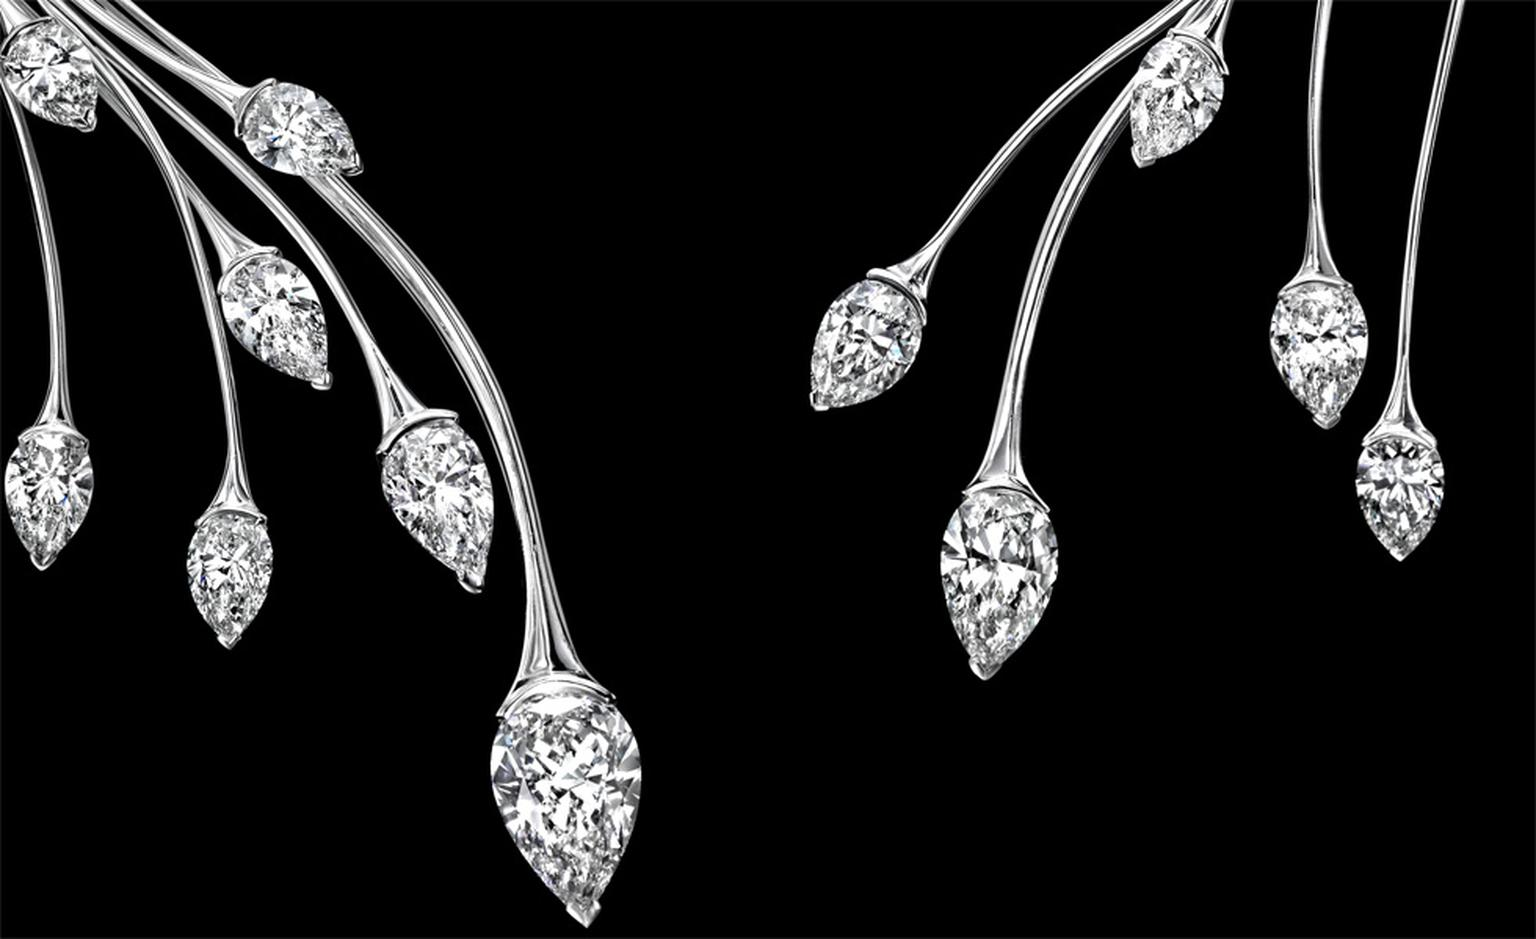 Close up of Sotheby's Diamonds Spray necklace. By setting the diamonds with the point down, they look like buds growing at the tip of a slender branch